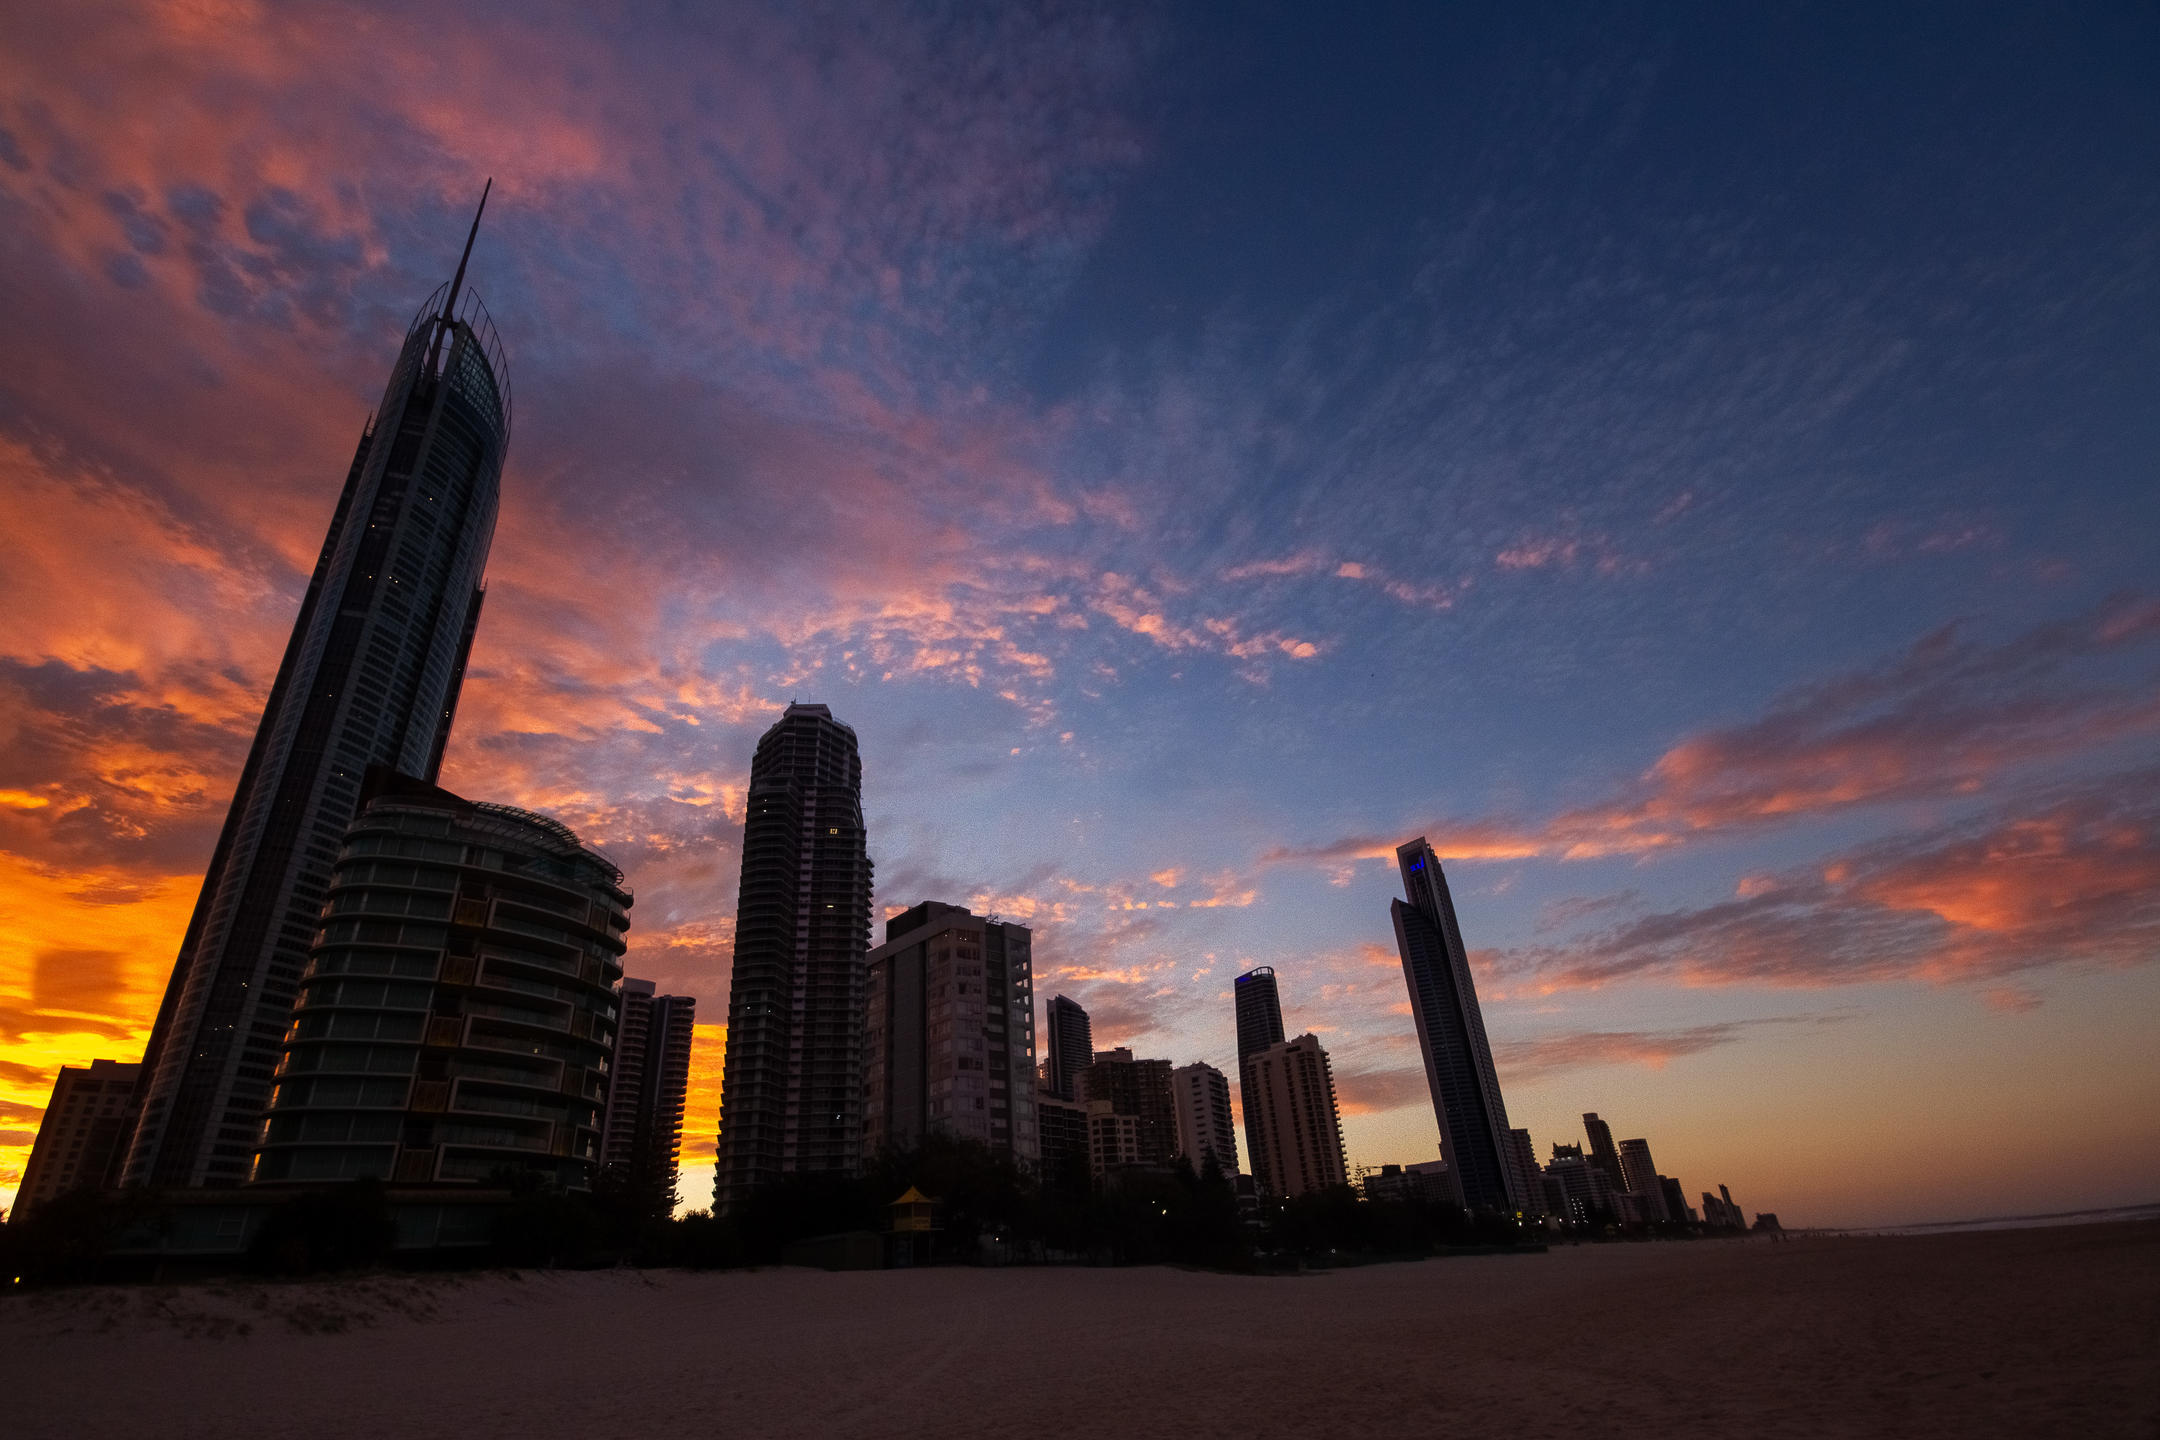 Looking back towards the sky scrapers of surfers paradise as the sun sets